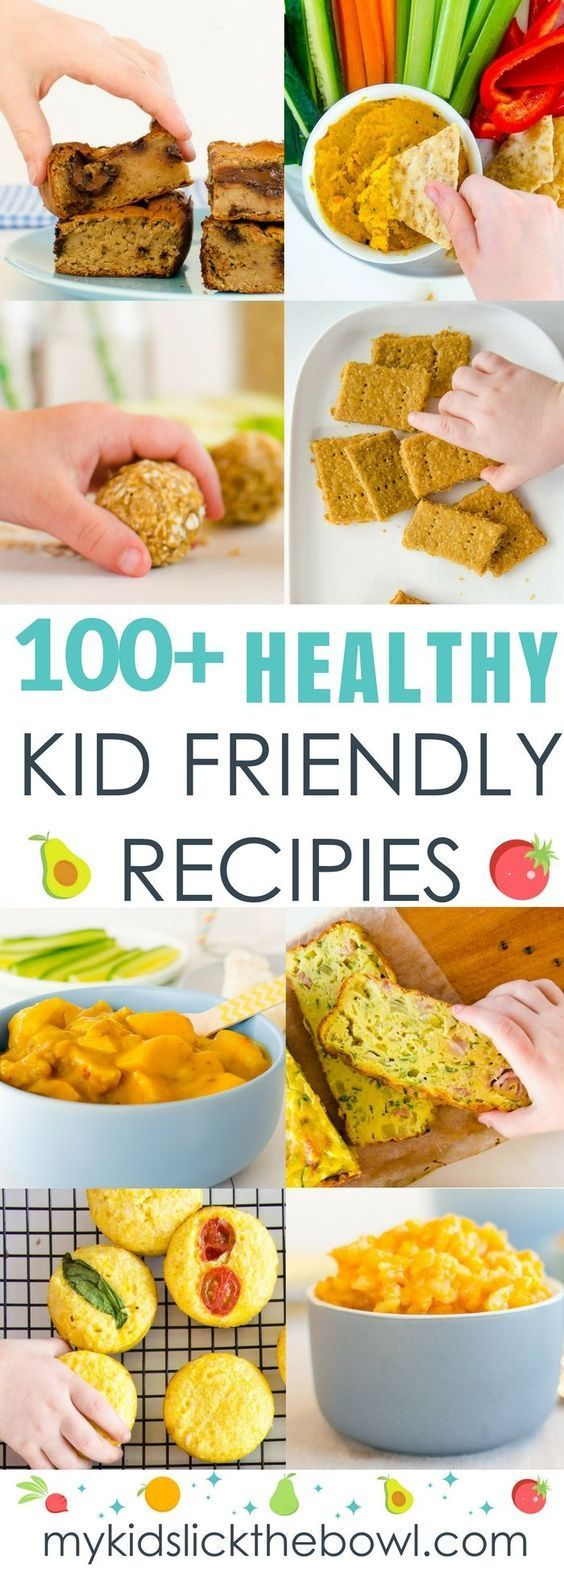 100+ Kid Friendly Recipes is part of Kid friendly meals - Healthy kid food ideas that are easy to make  Perfect for busy mums and families as they are all kidapproved